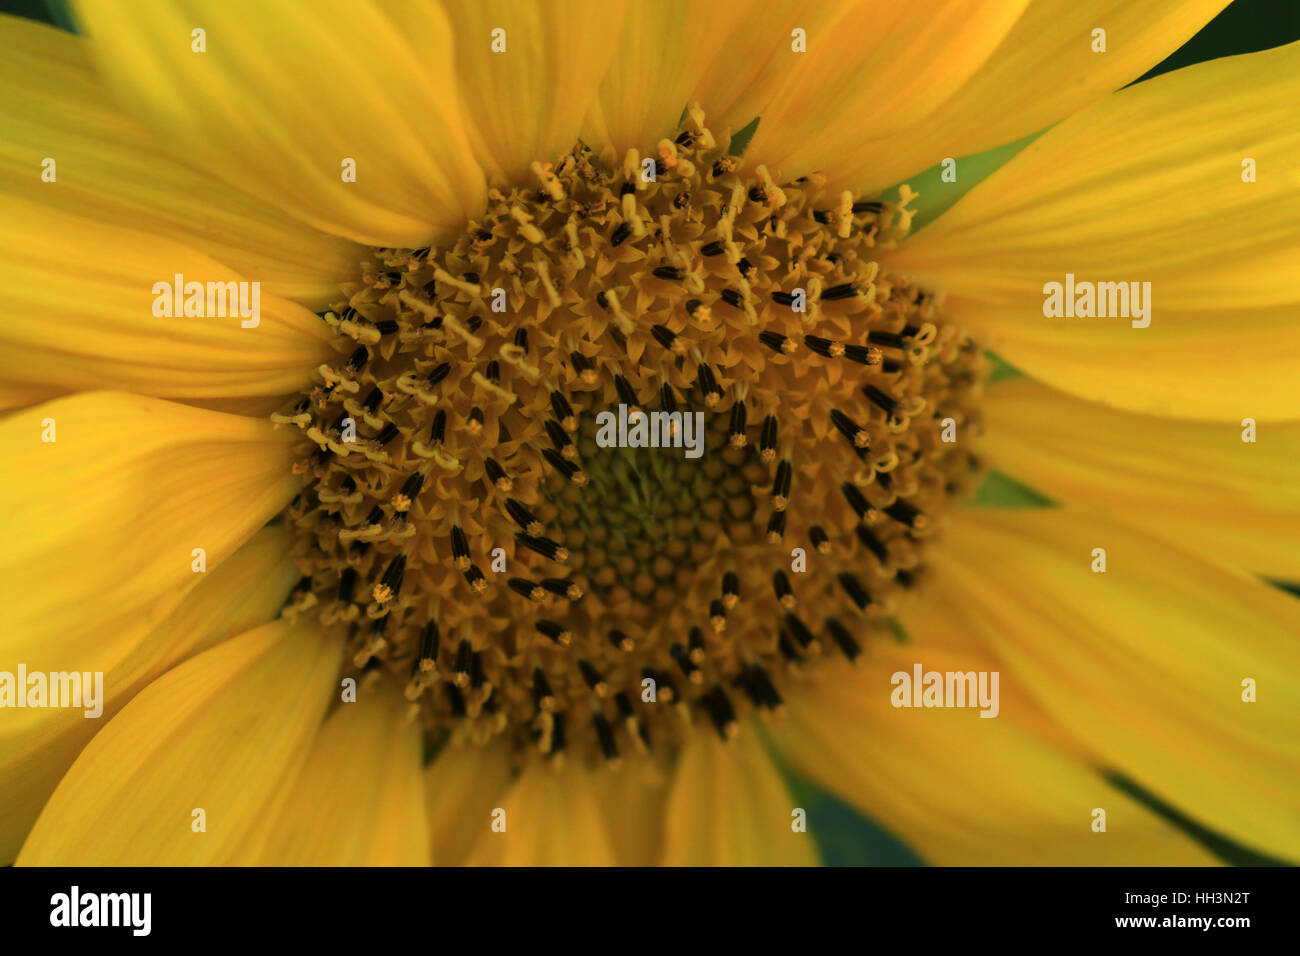 sonnenblumen garten stockfotos sonnenblumen garten bilder alamy. Black Bedroom Furniture Sets. Home Design Ideas